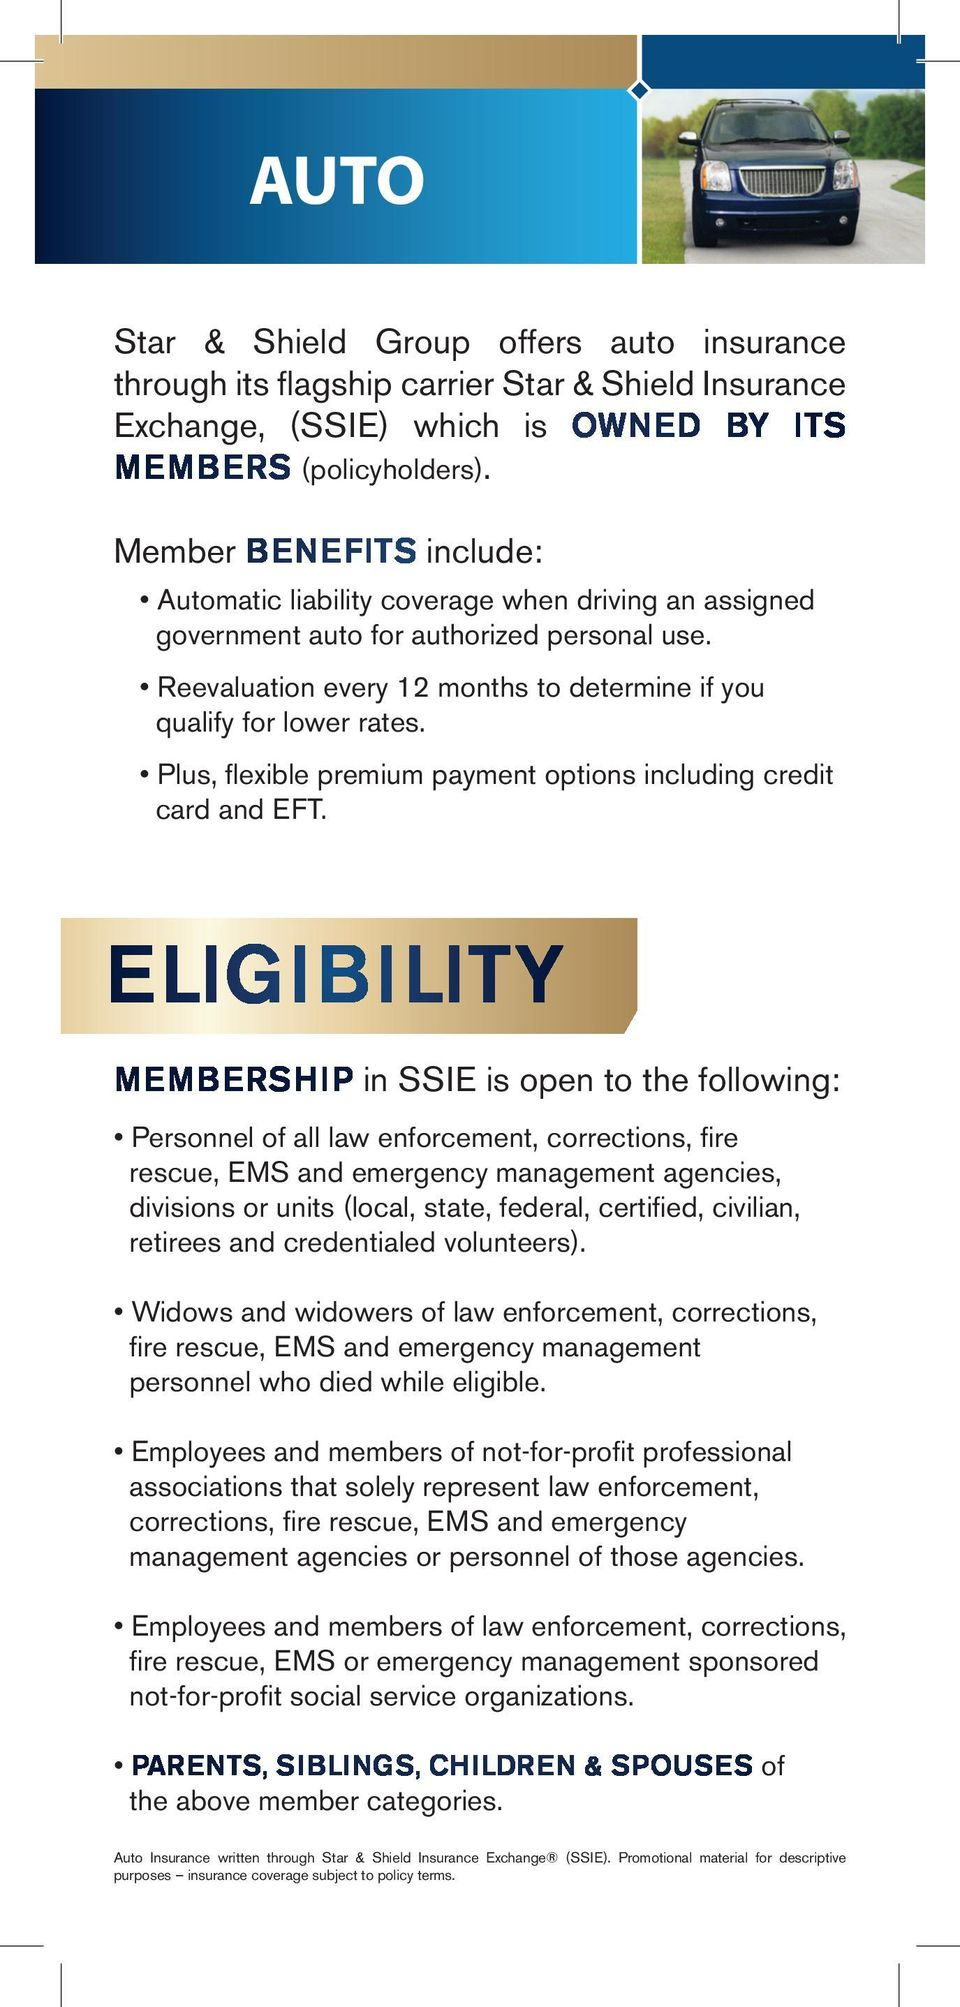 Plus, flexible premium payment options including credit card and EFT.